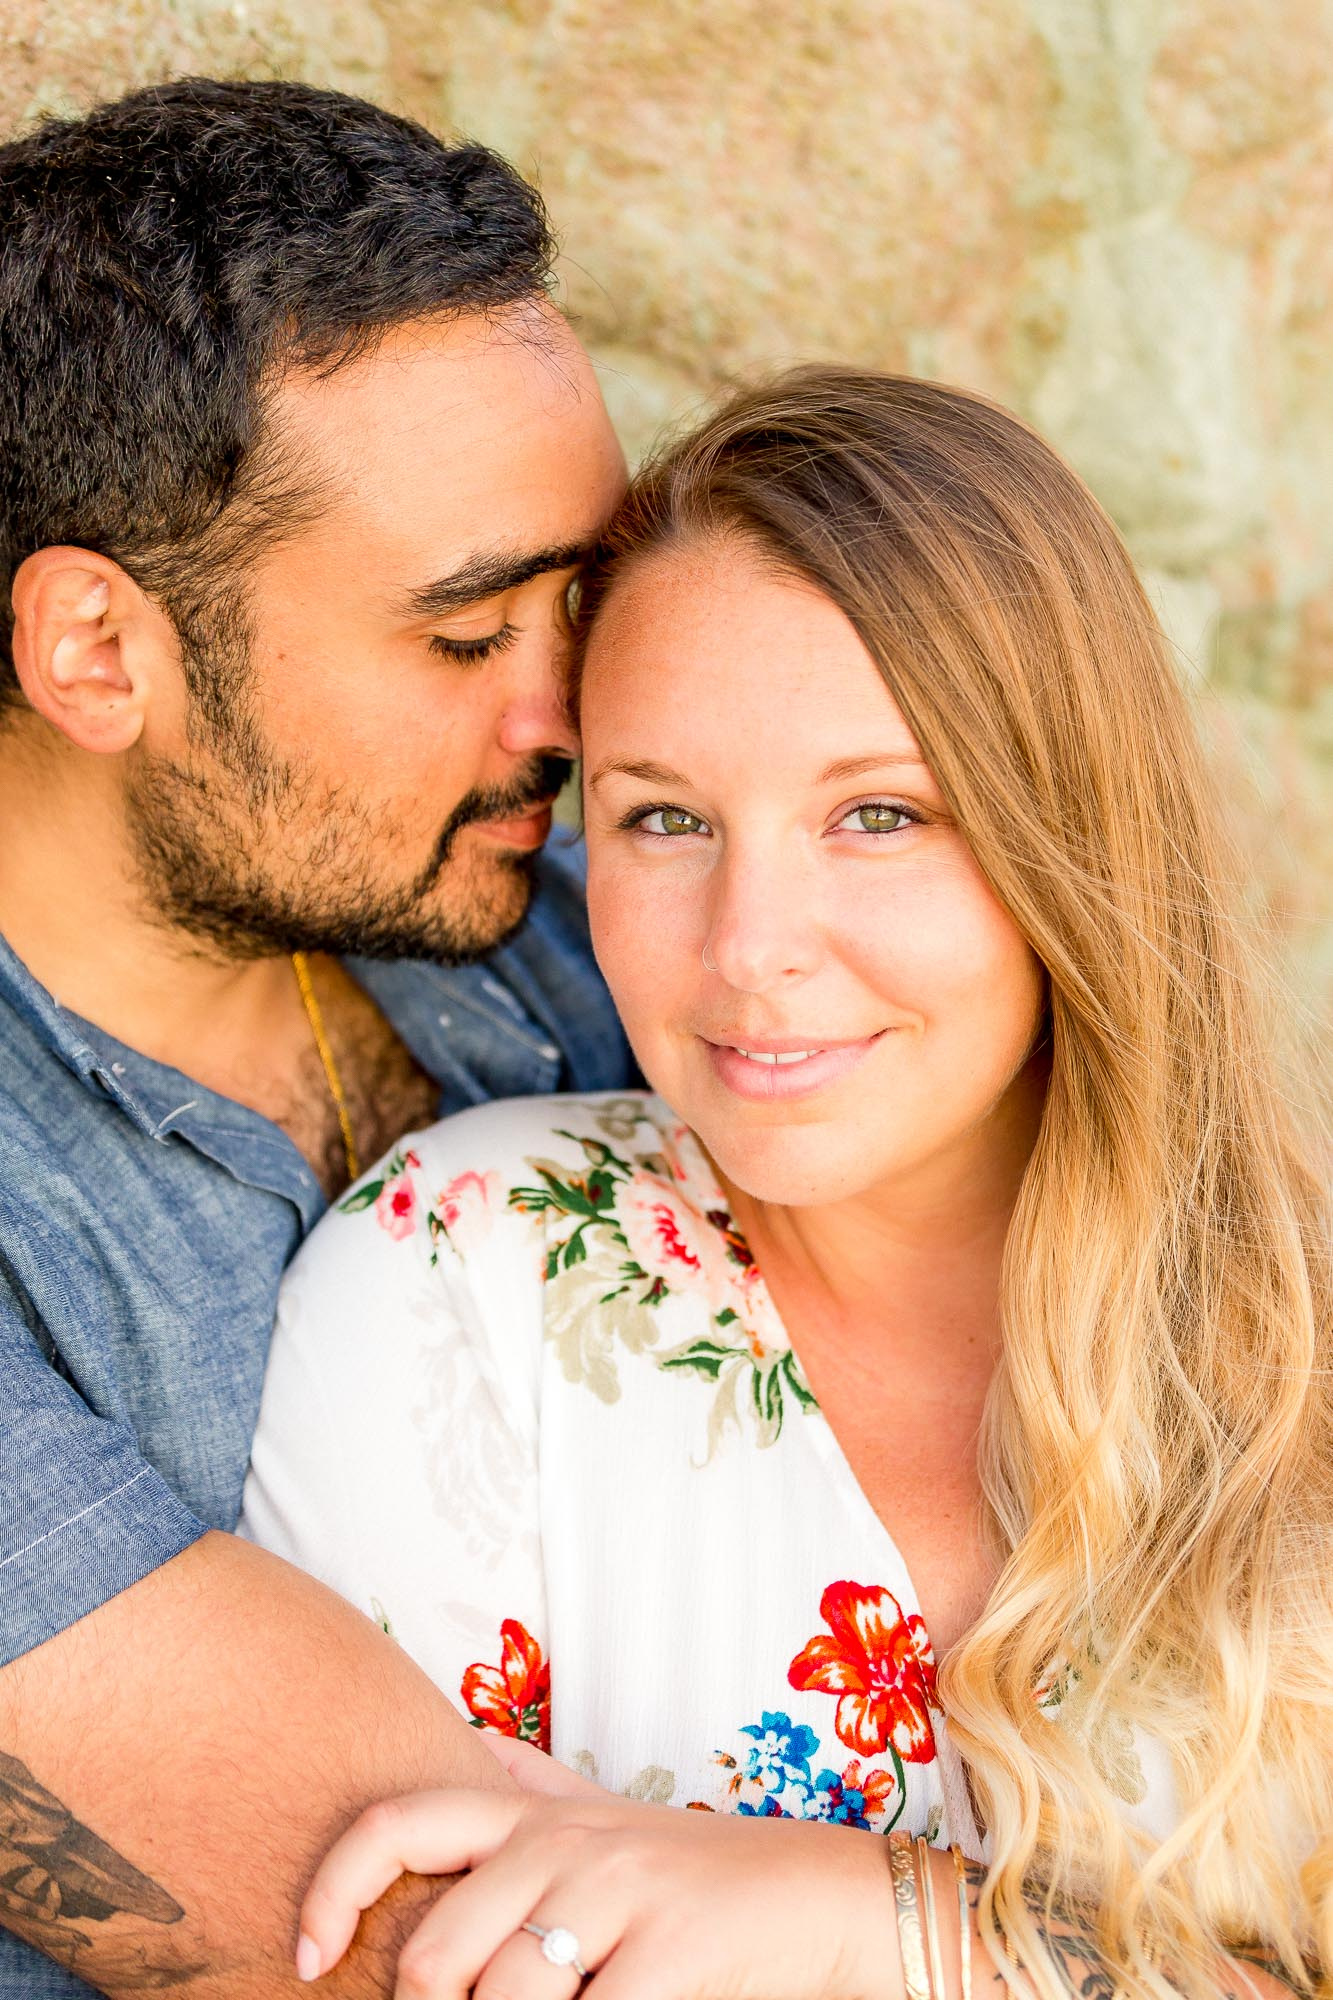 Justine_Puneet_Cardiff_Engagement_Session_158.jpg